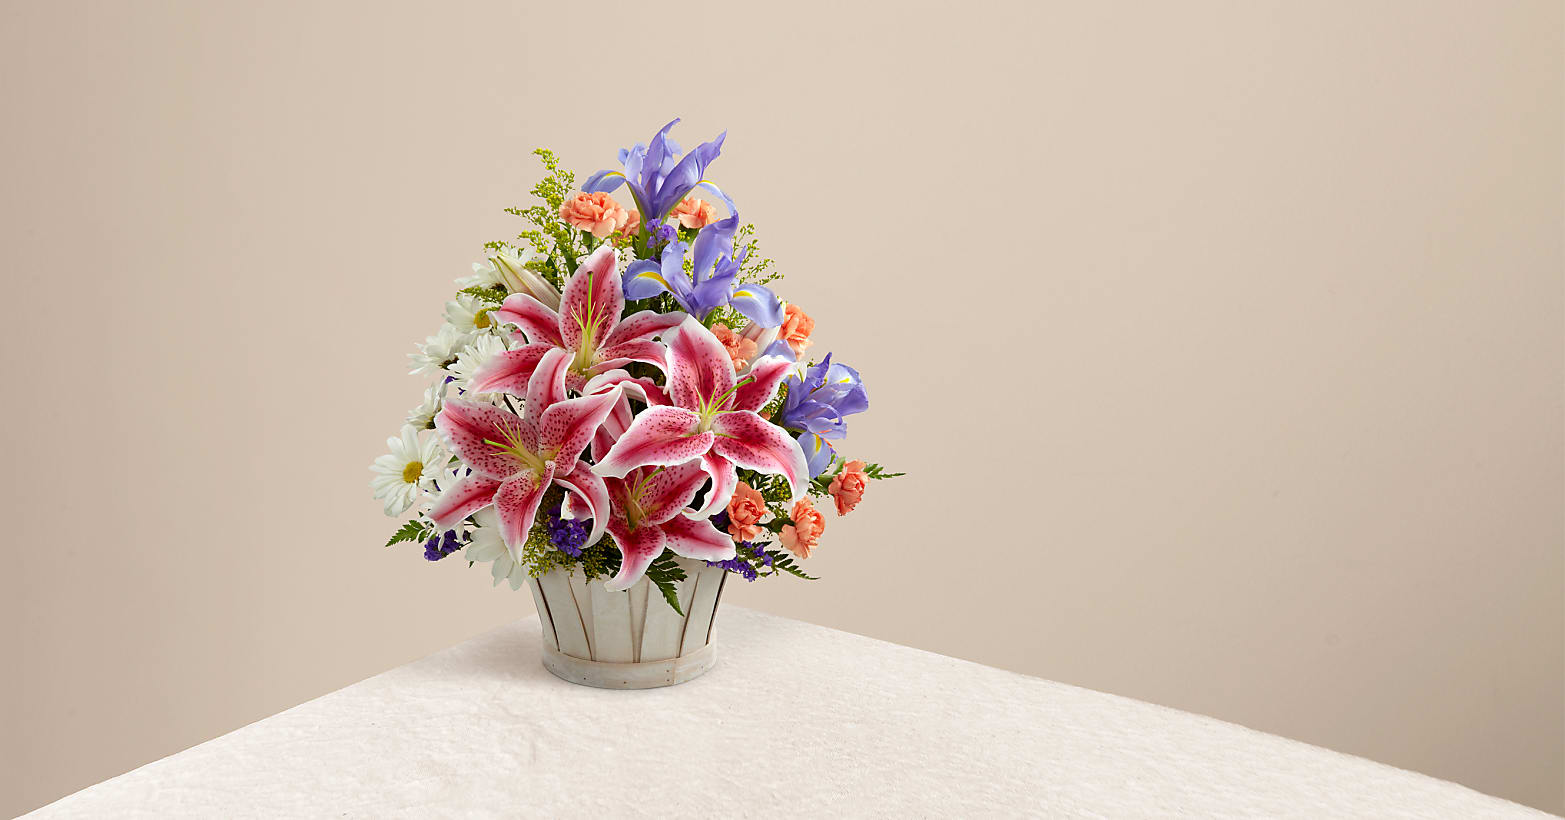 The Wondrous Nature Bouquet - Image 1 Of 3